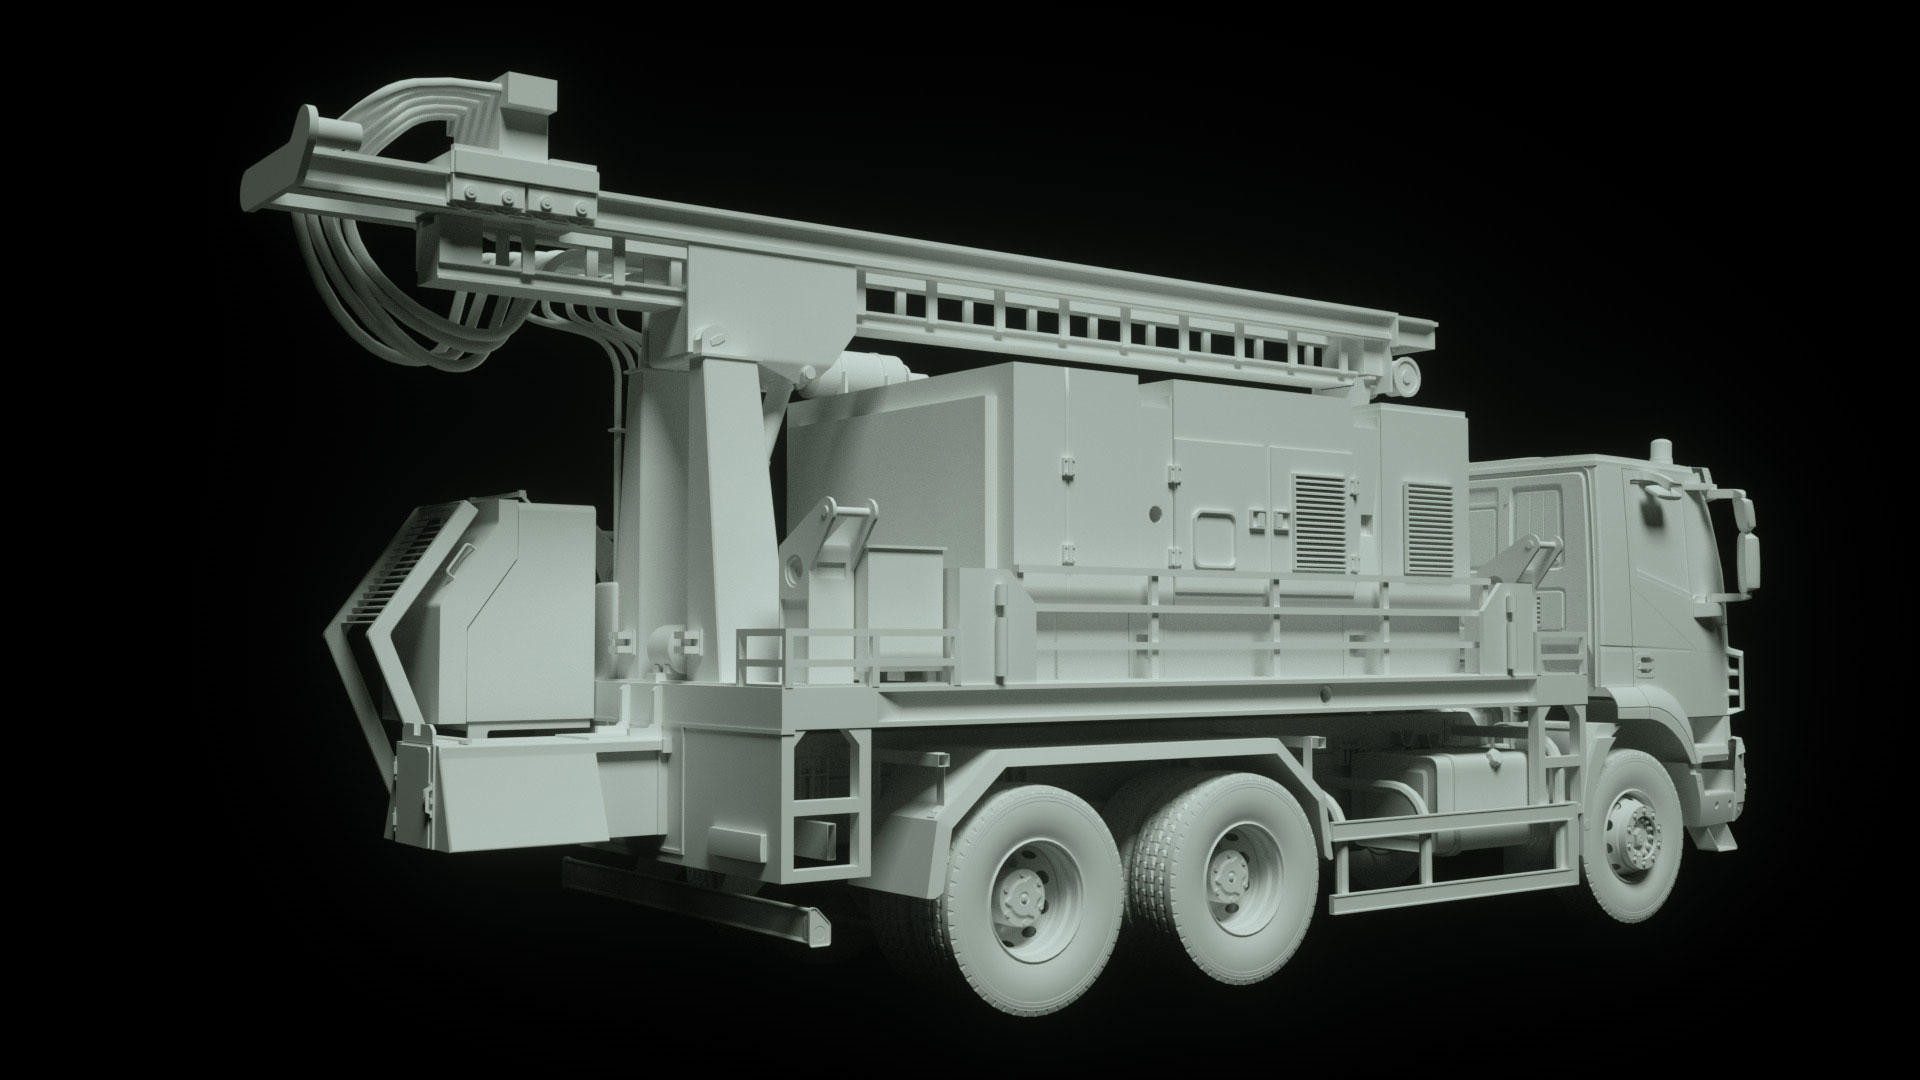 Projects_CharityWater_process_Drilling_Rig_model_02_Octane